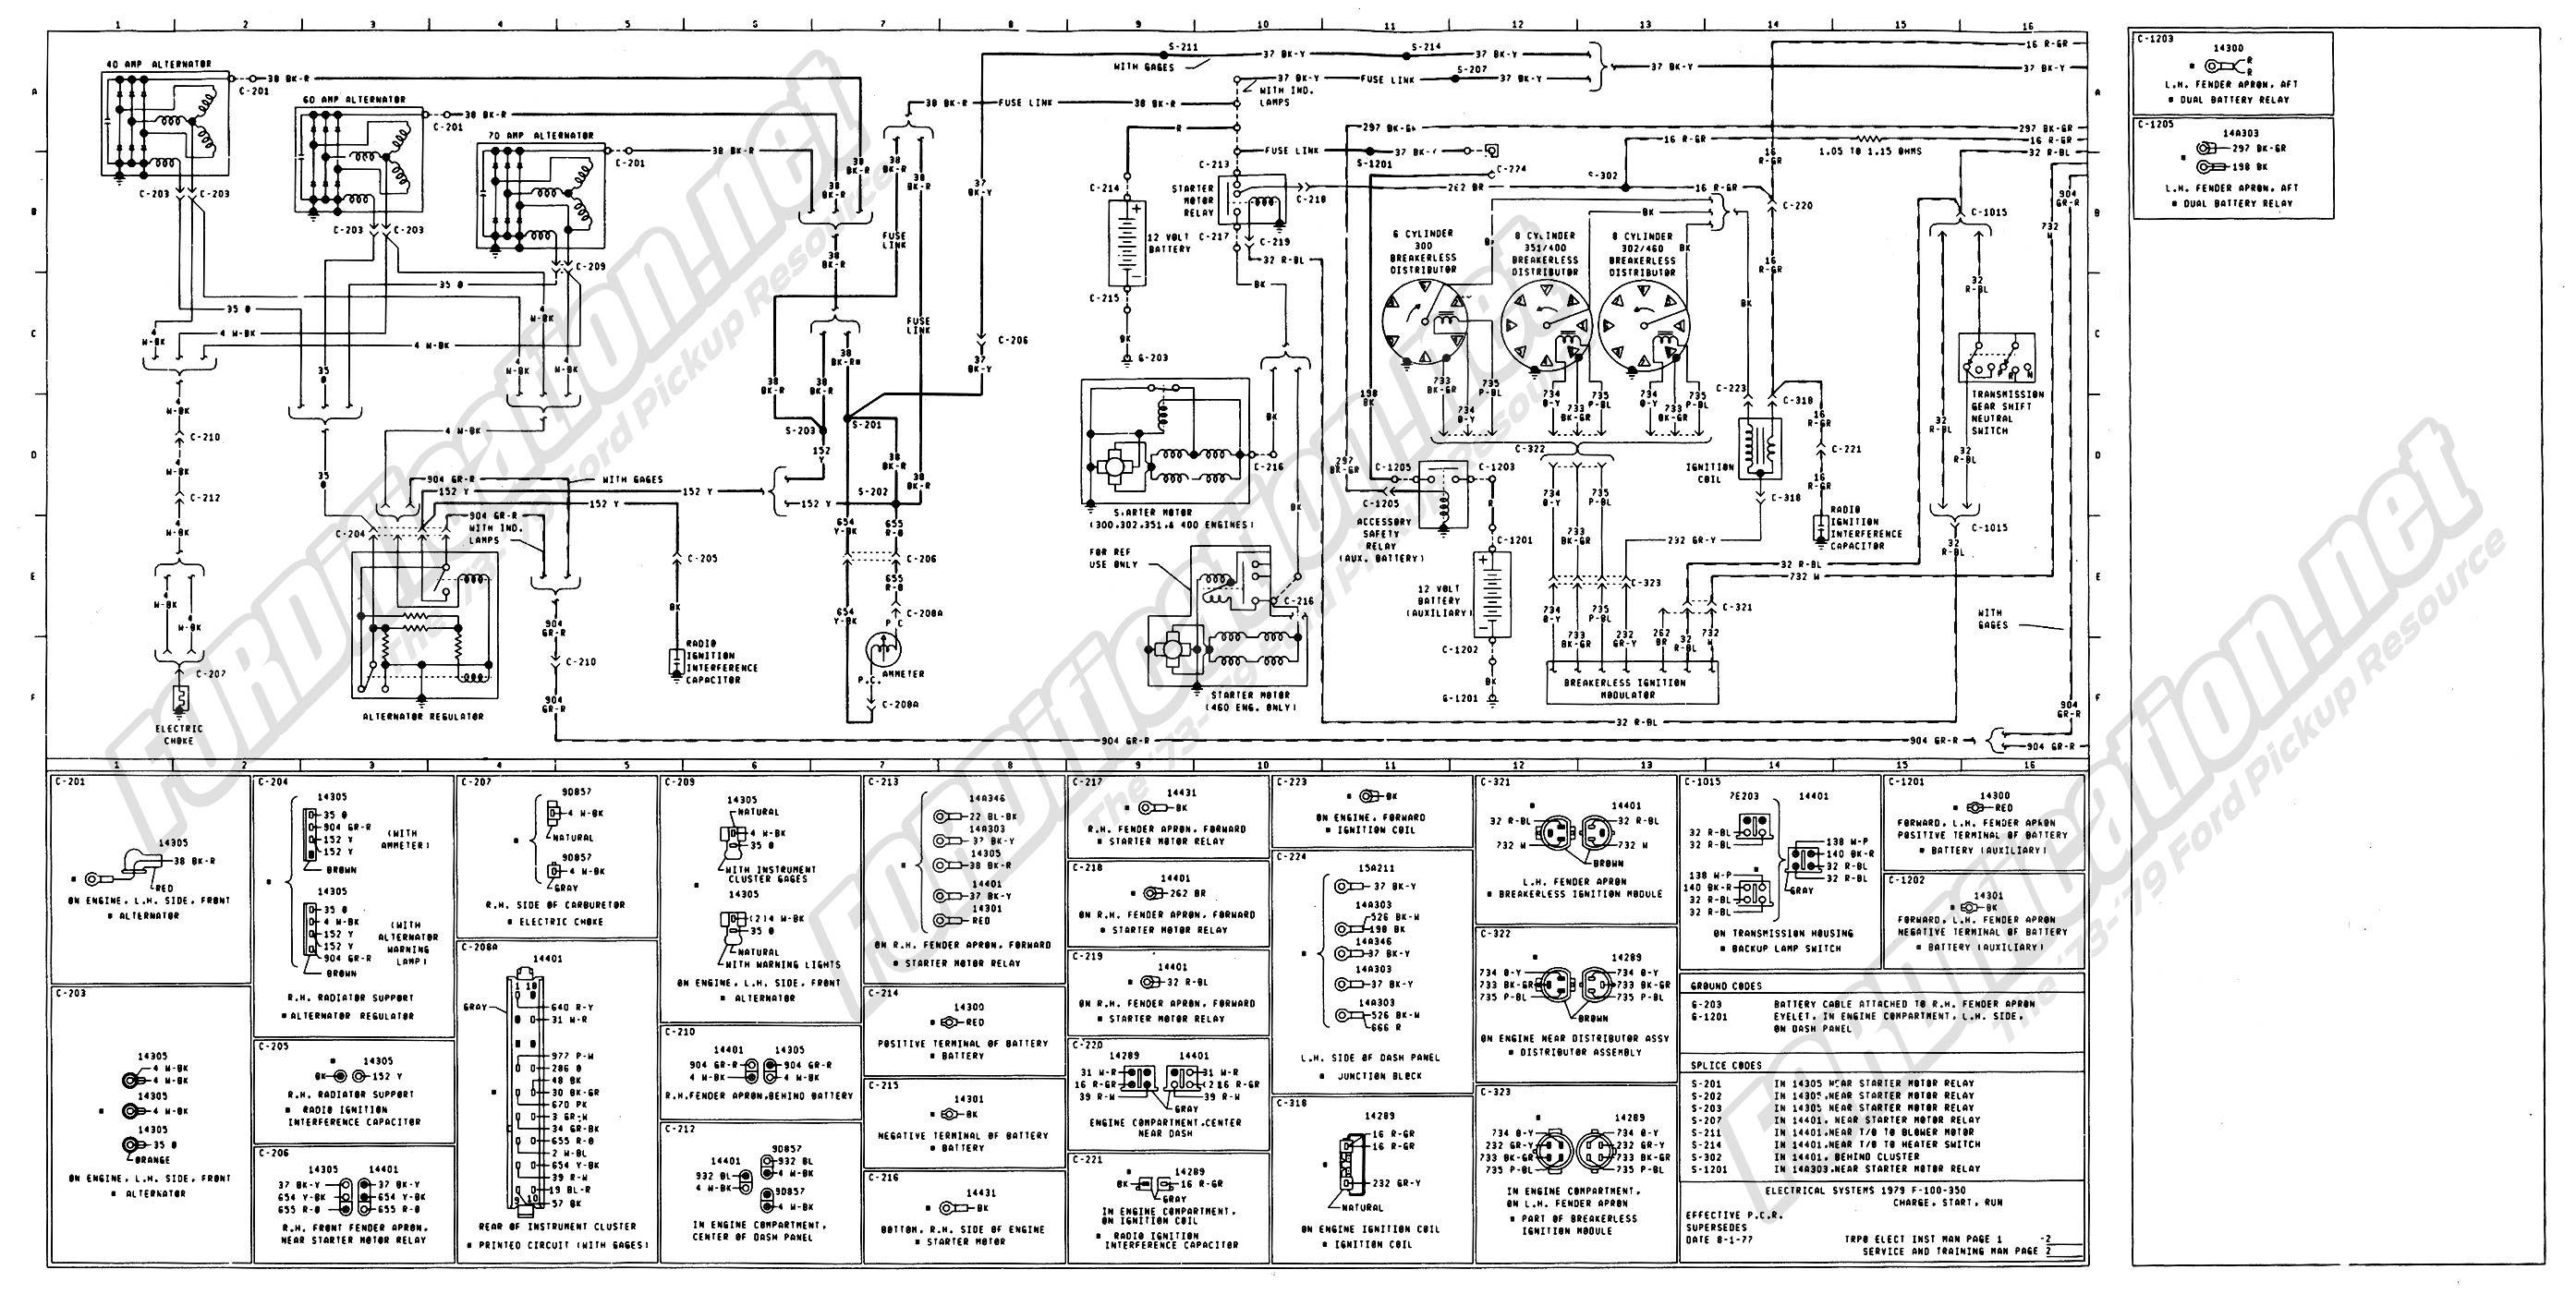 1973 1979 ford truck wiring diagrams schematics fordification net rh fordification net 1973 Ford Alternator Wiring Diagram 1979 F250 Wiring Diagram